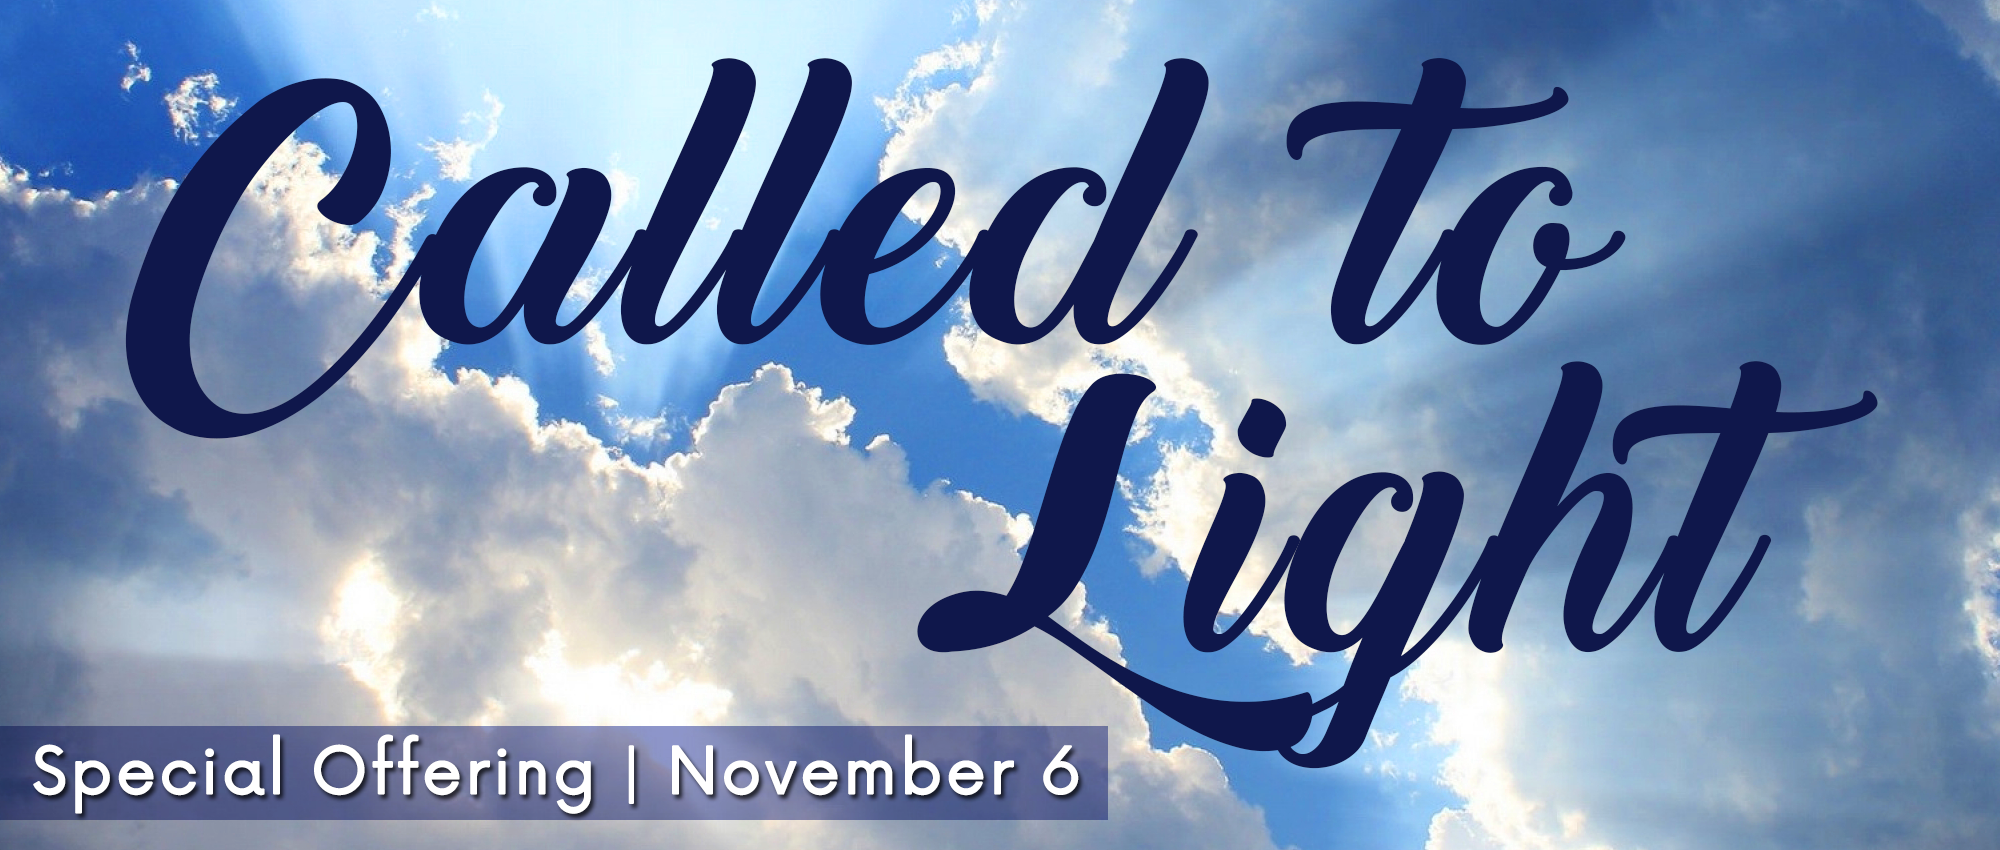 Called-to-Light-Clouds-Banner